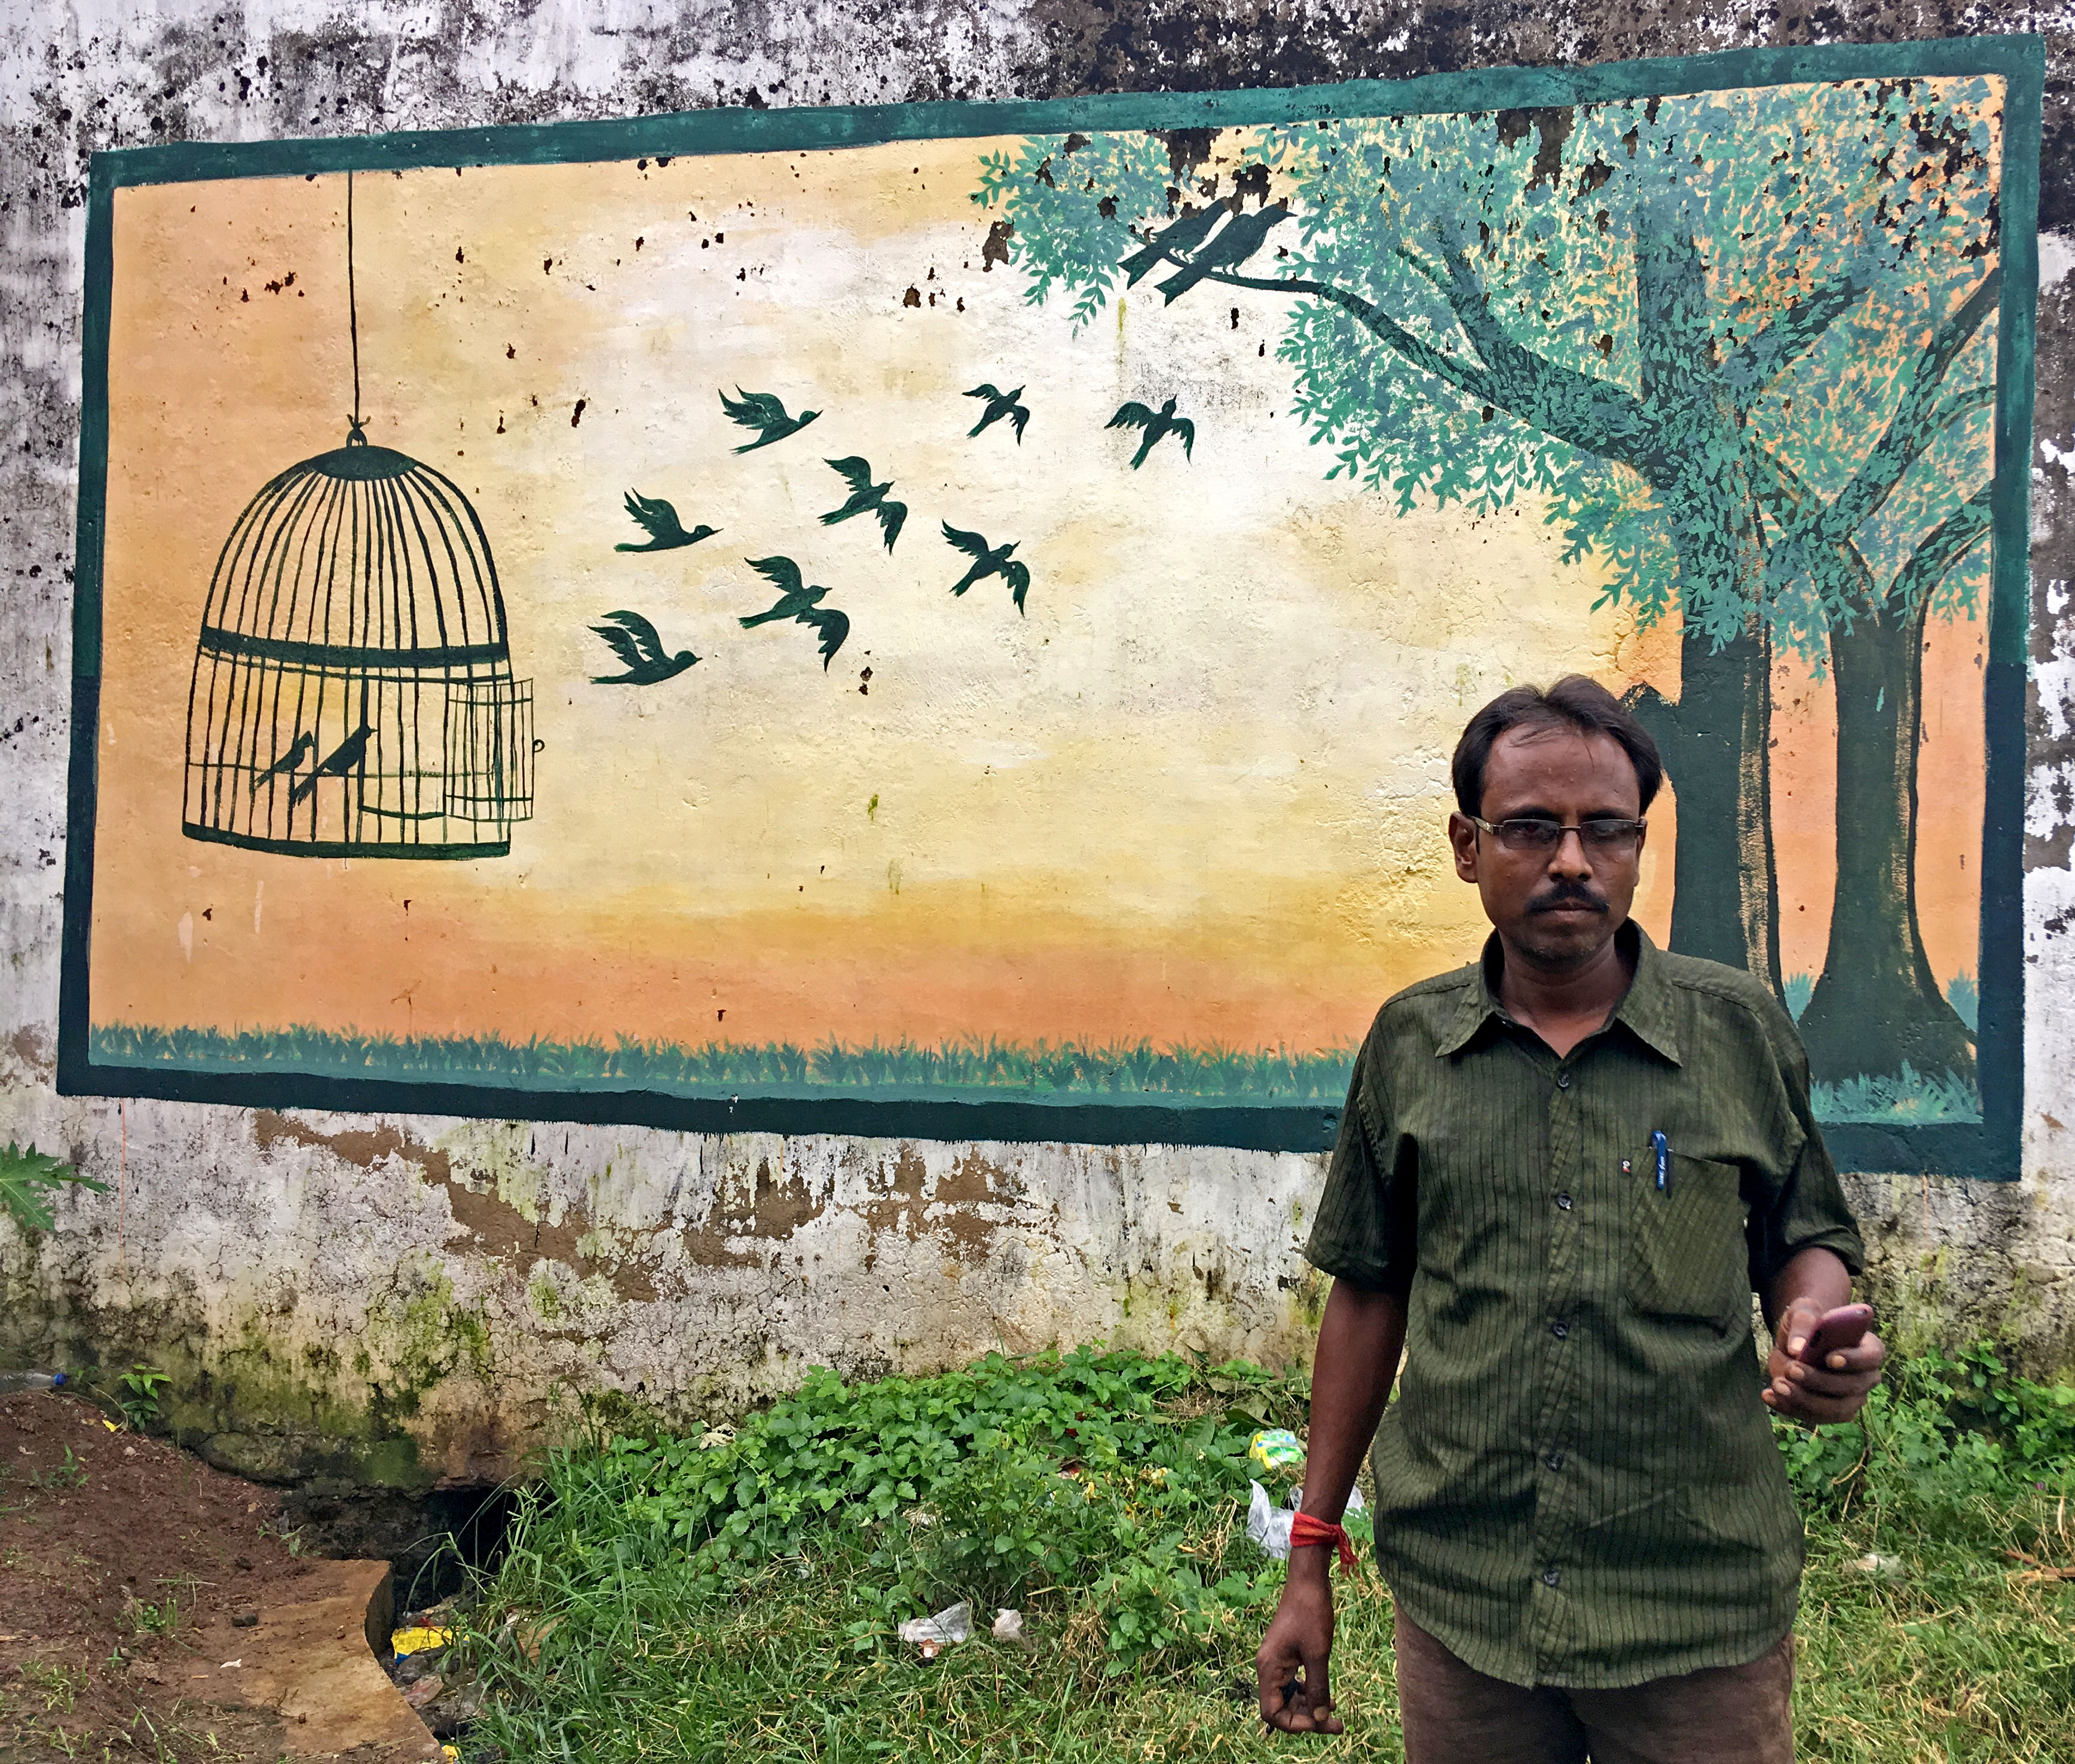 Lifer Chandan Chandra at the Midnapore Open Correctional Home